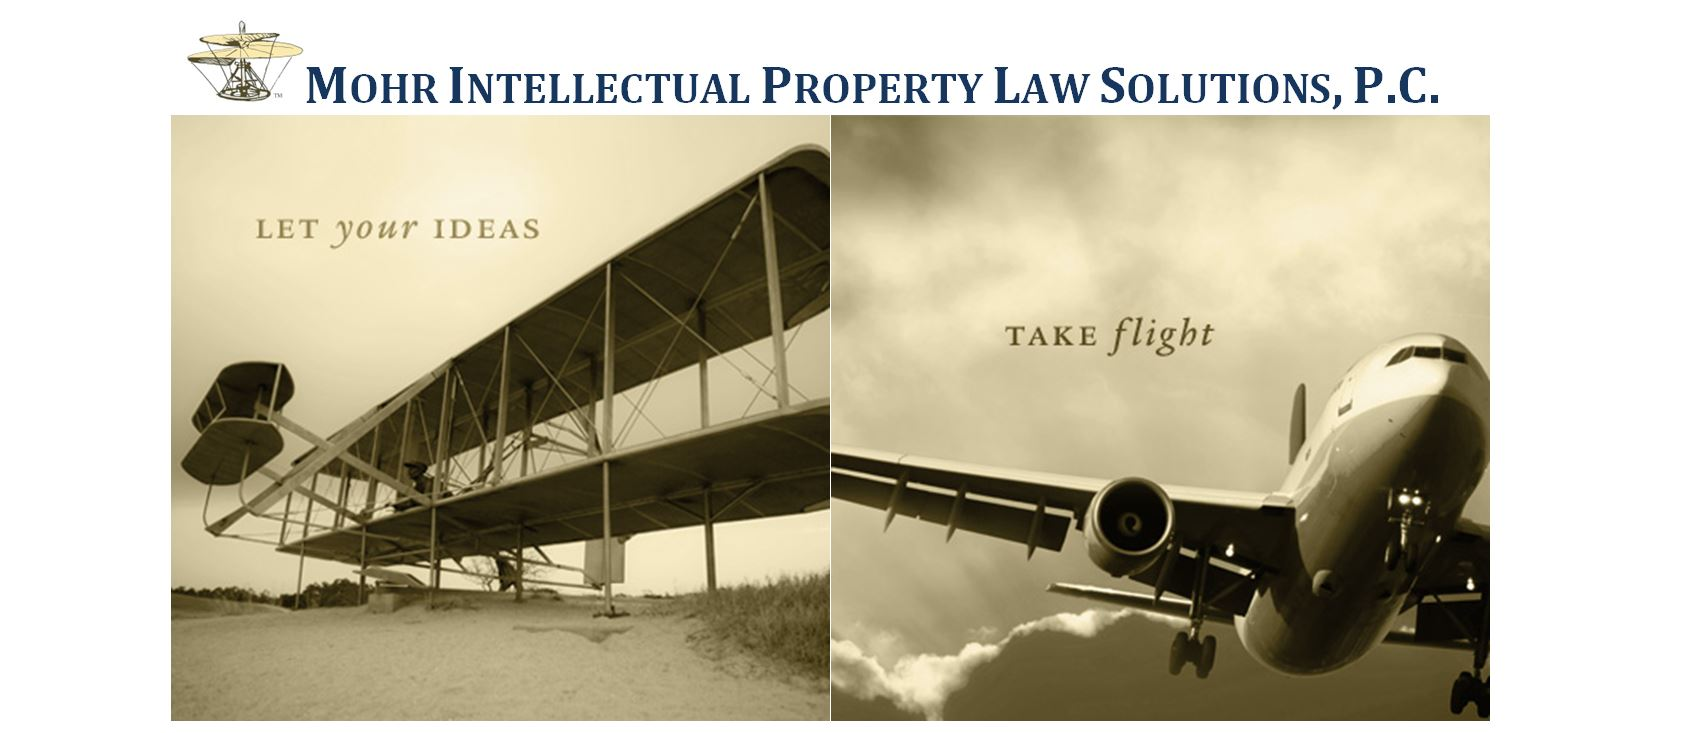 Mohr Intellectual Property Law Solutions, P.C. reviews | 522 SW 5th Ave Suite 1390 - Portland OR